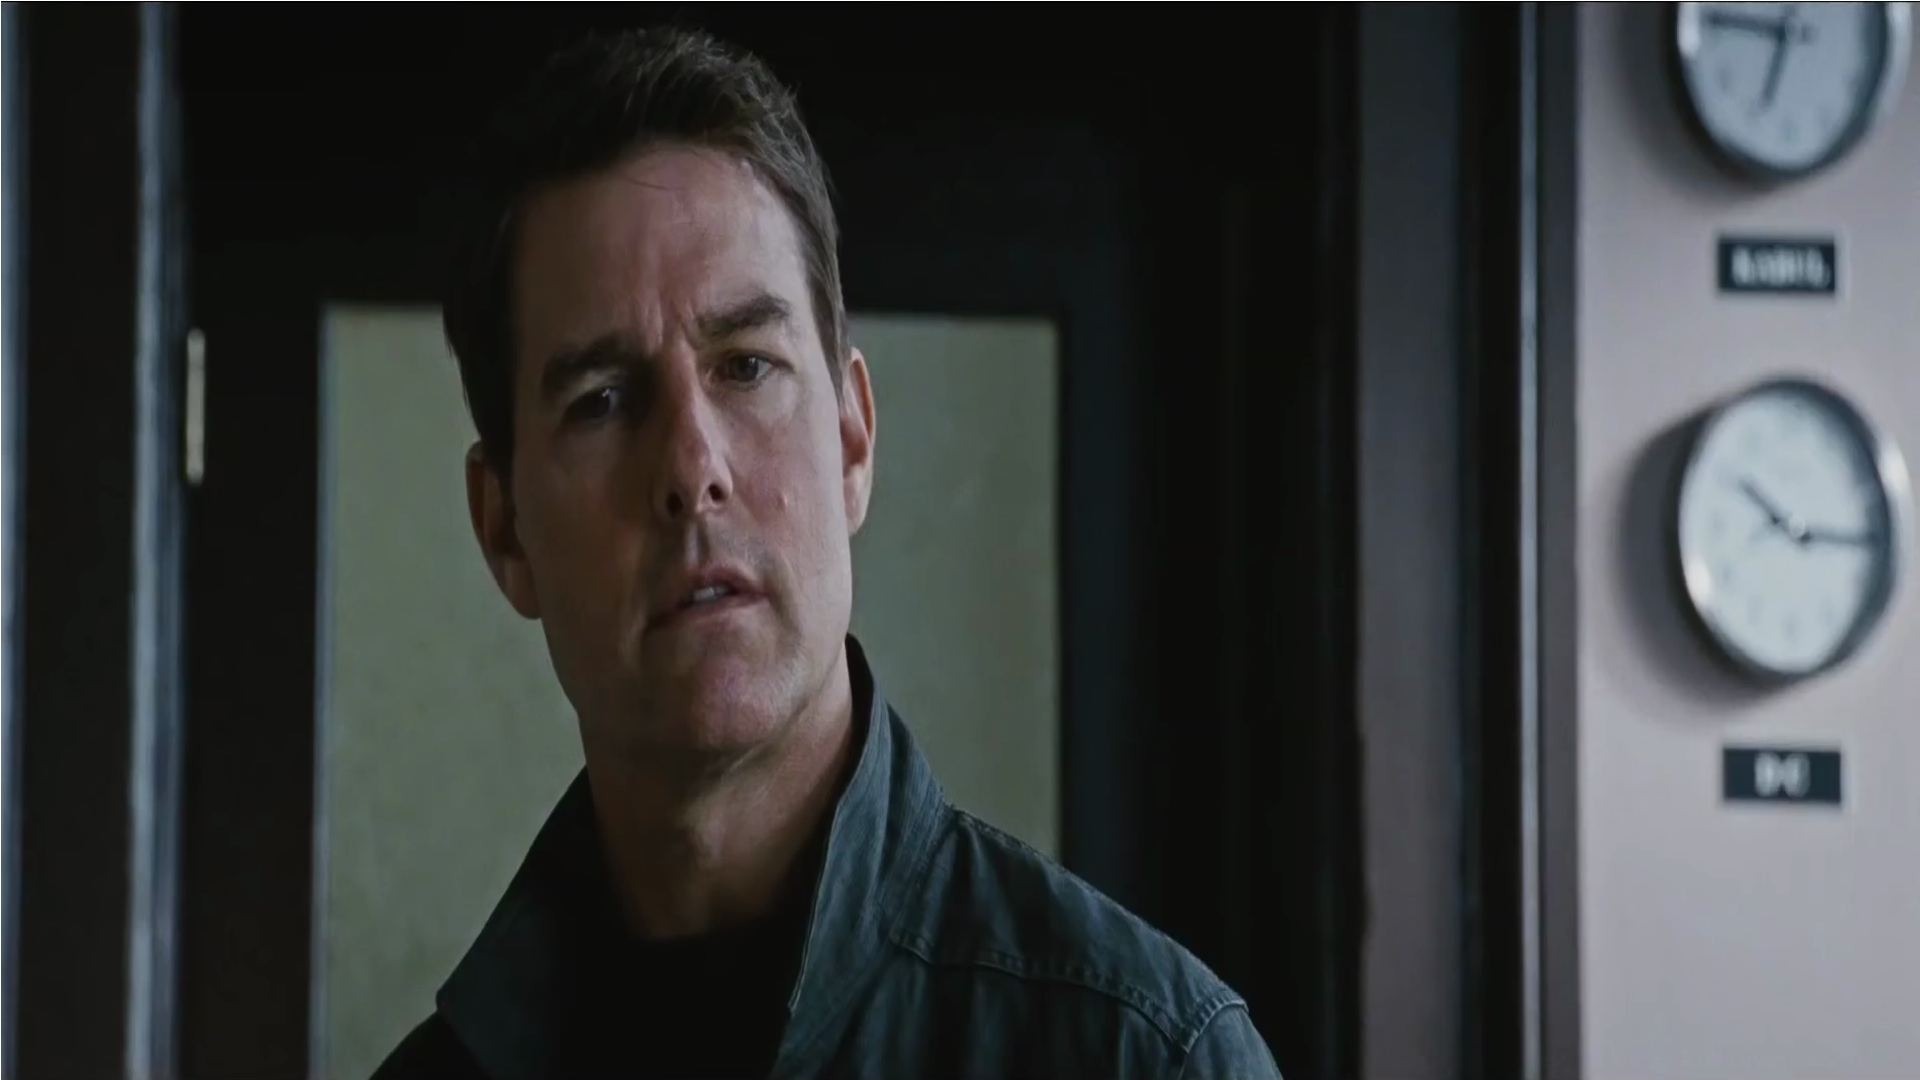 Tom Cruise in Jack Reacher Movie HD Wallpapers HD Wallpapers 1920x1080